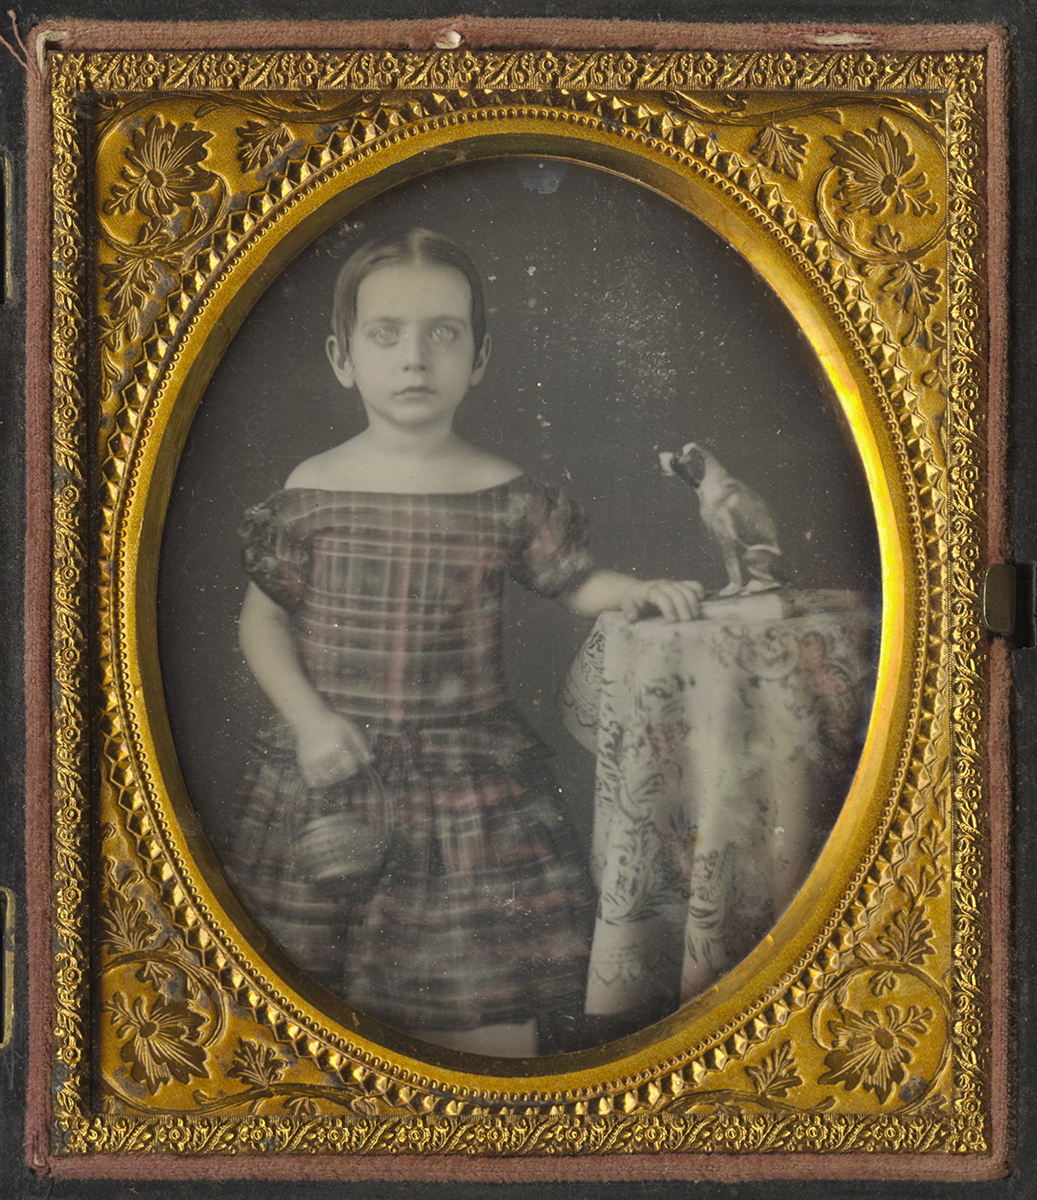 Portrait of Young Girl Holding Straw Basket - Statue of a Dog on Table Beside Her